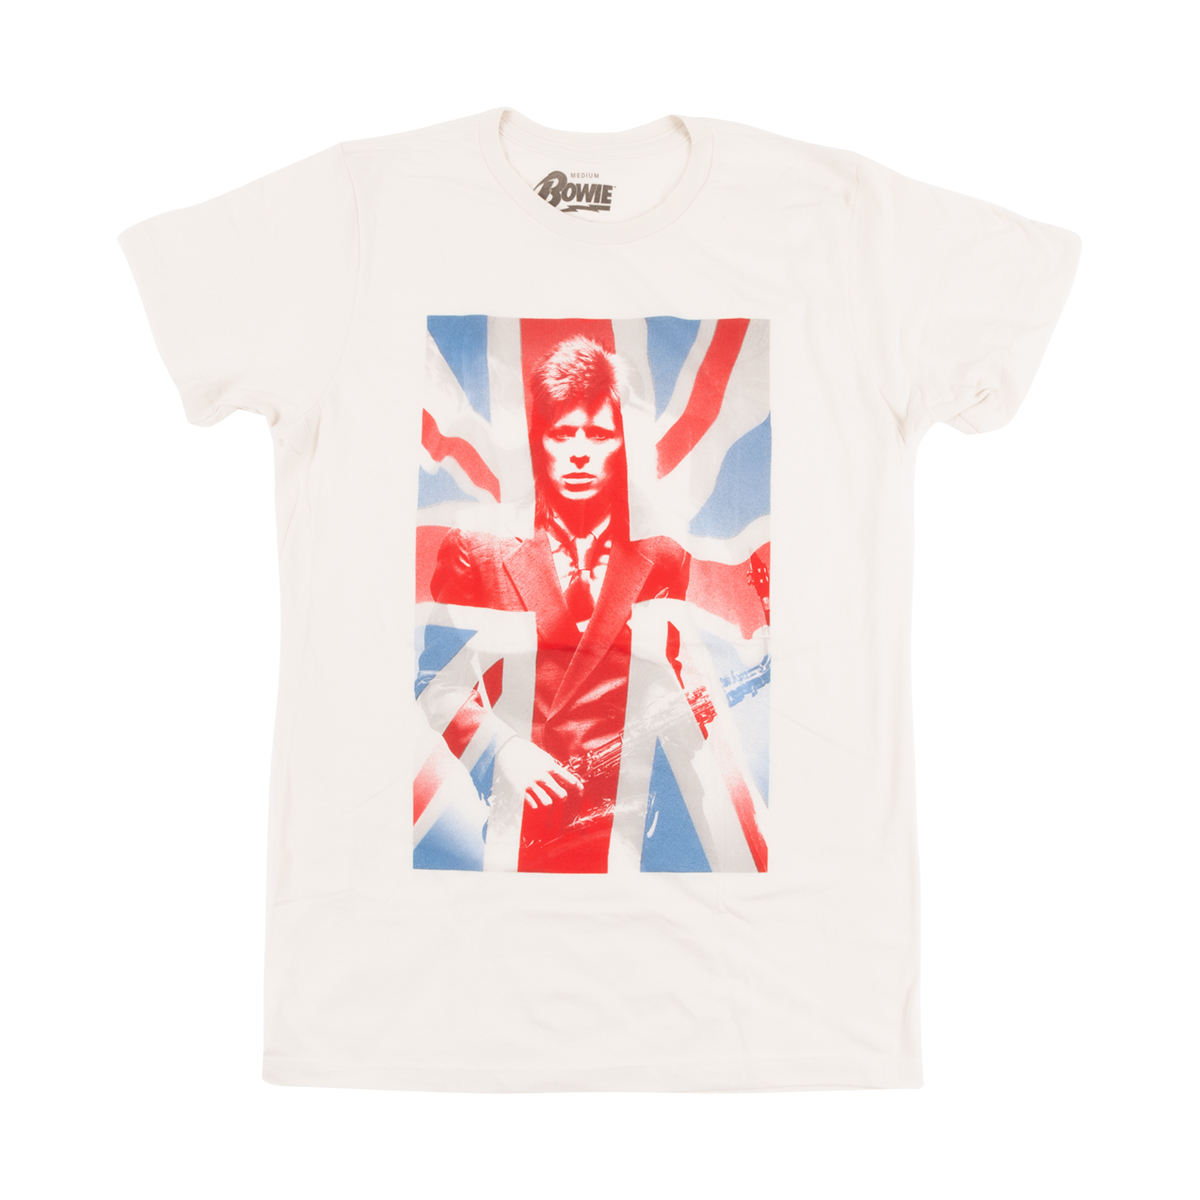 David Bowie Union Jack T-shirt